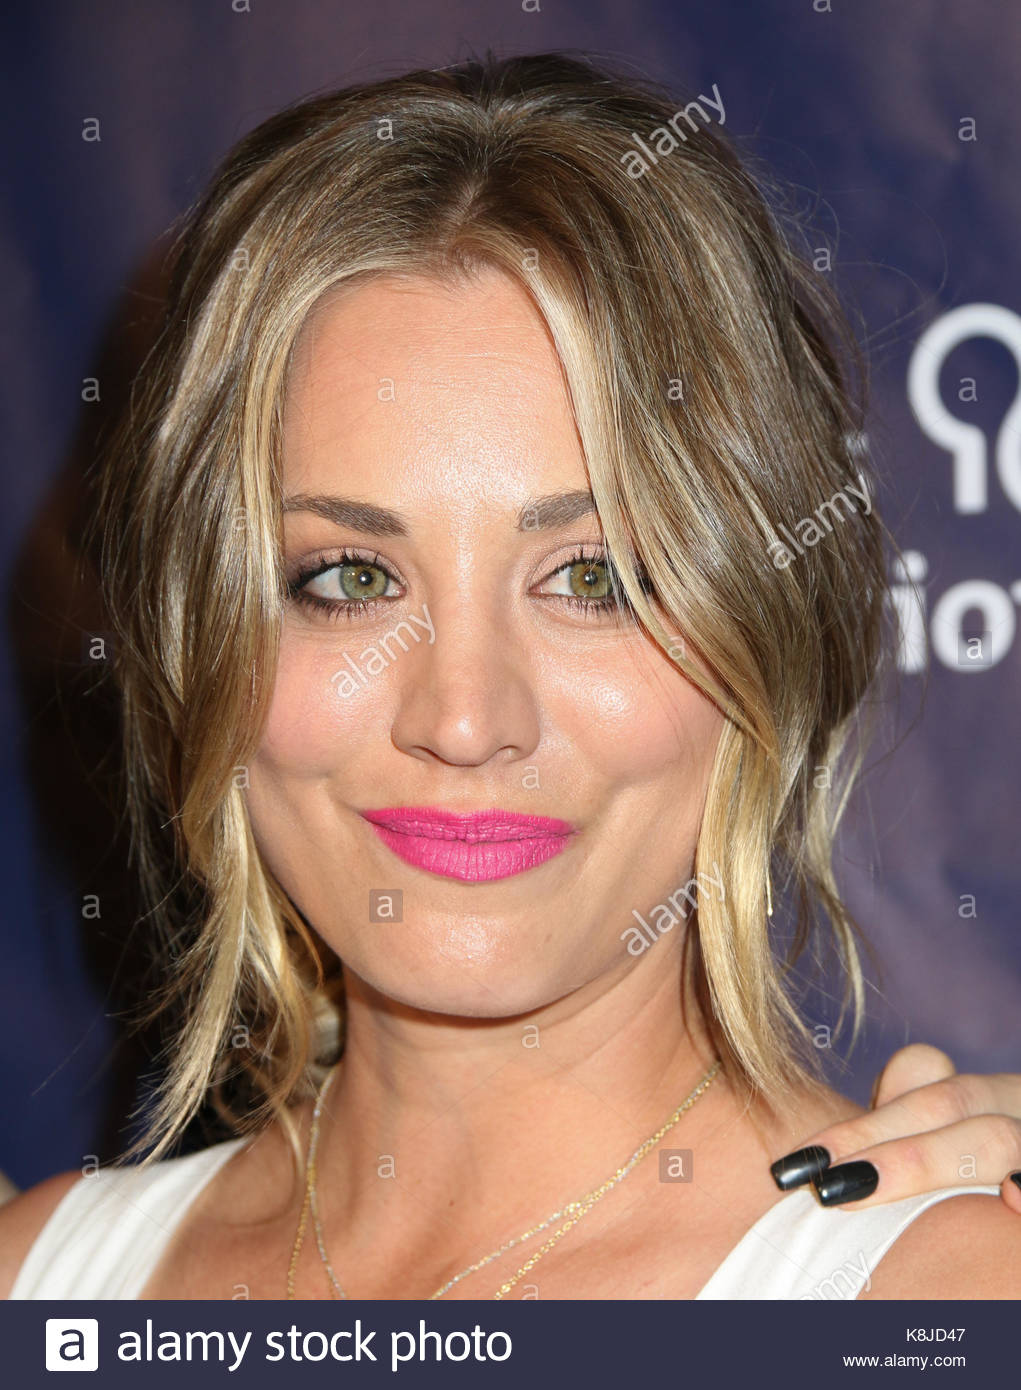 Kaley Cuoco Sweeting Celebrities At The 22nd A Night At Sardis